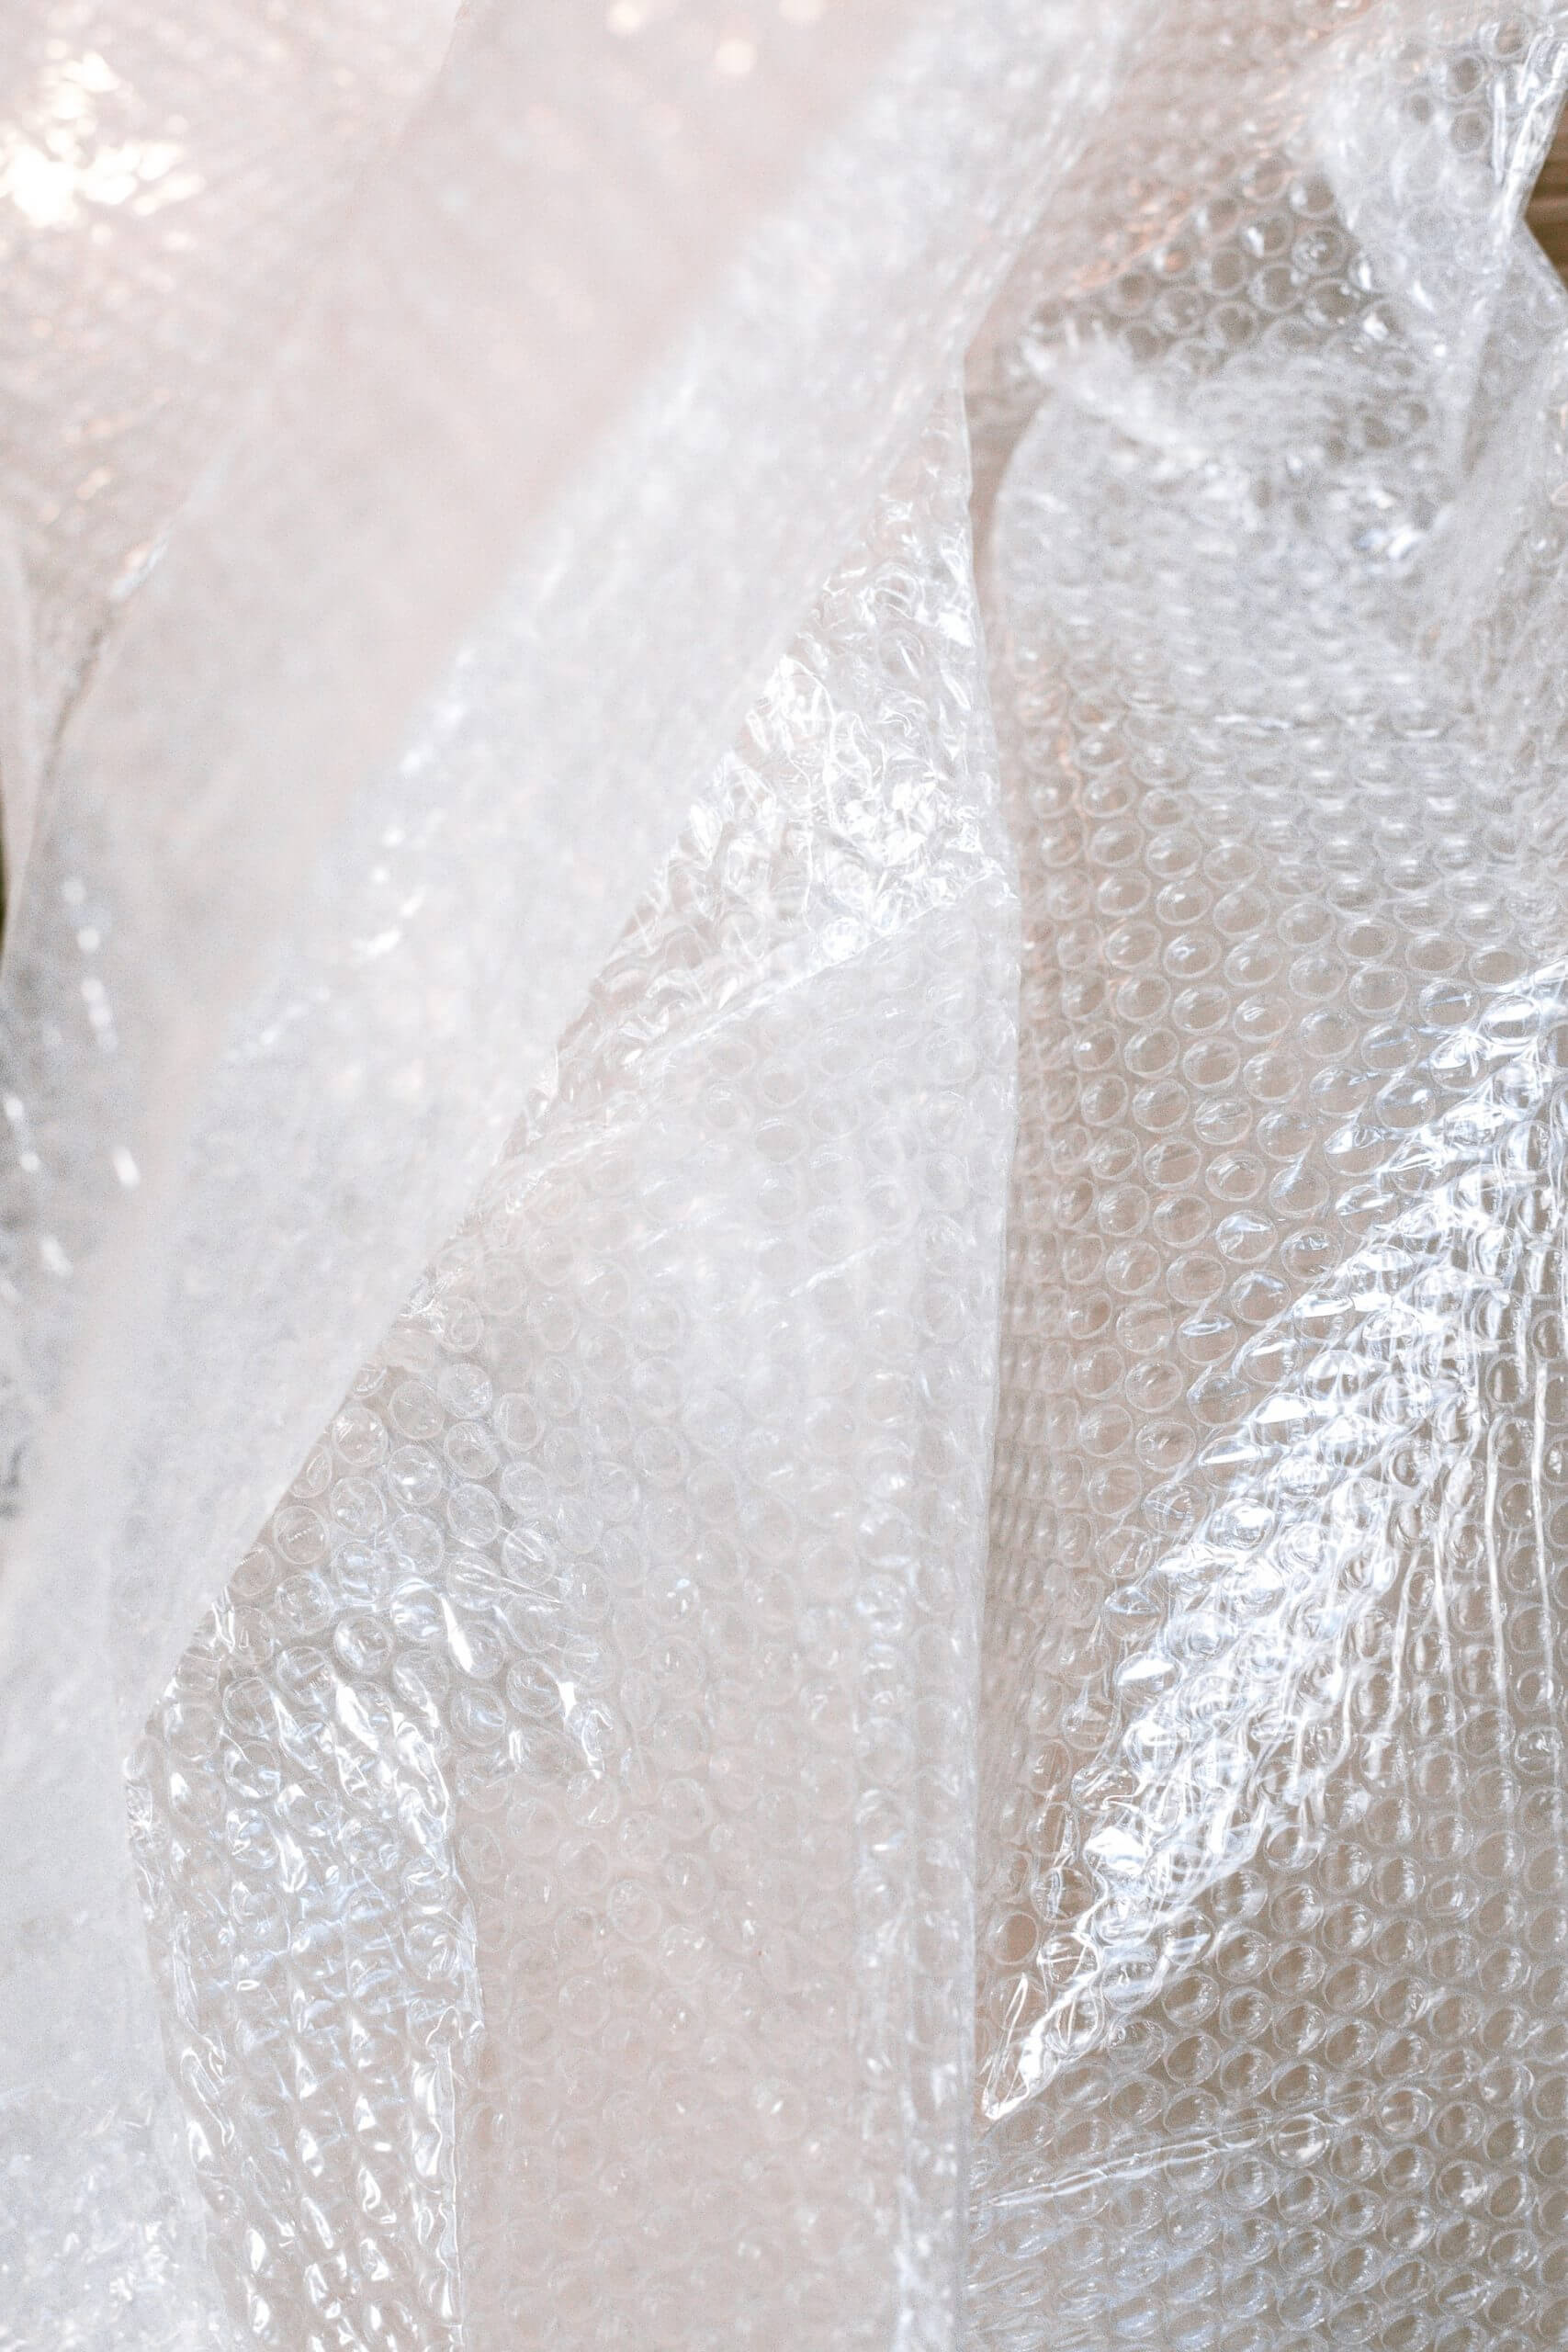 Soft plastic recycling (LDPE)